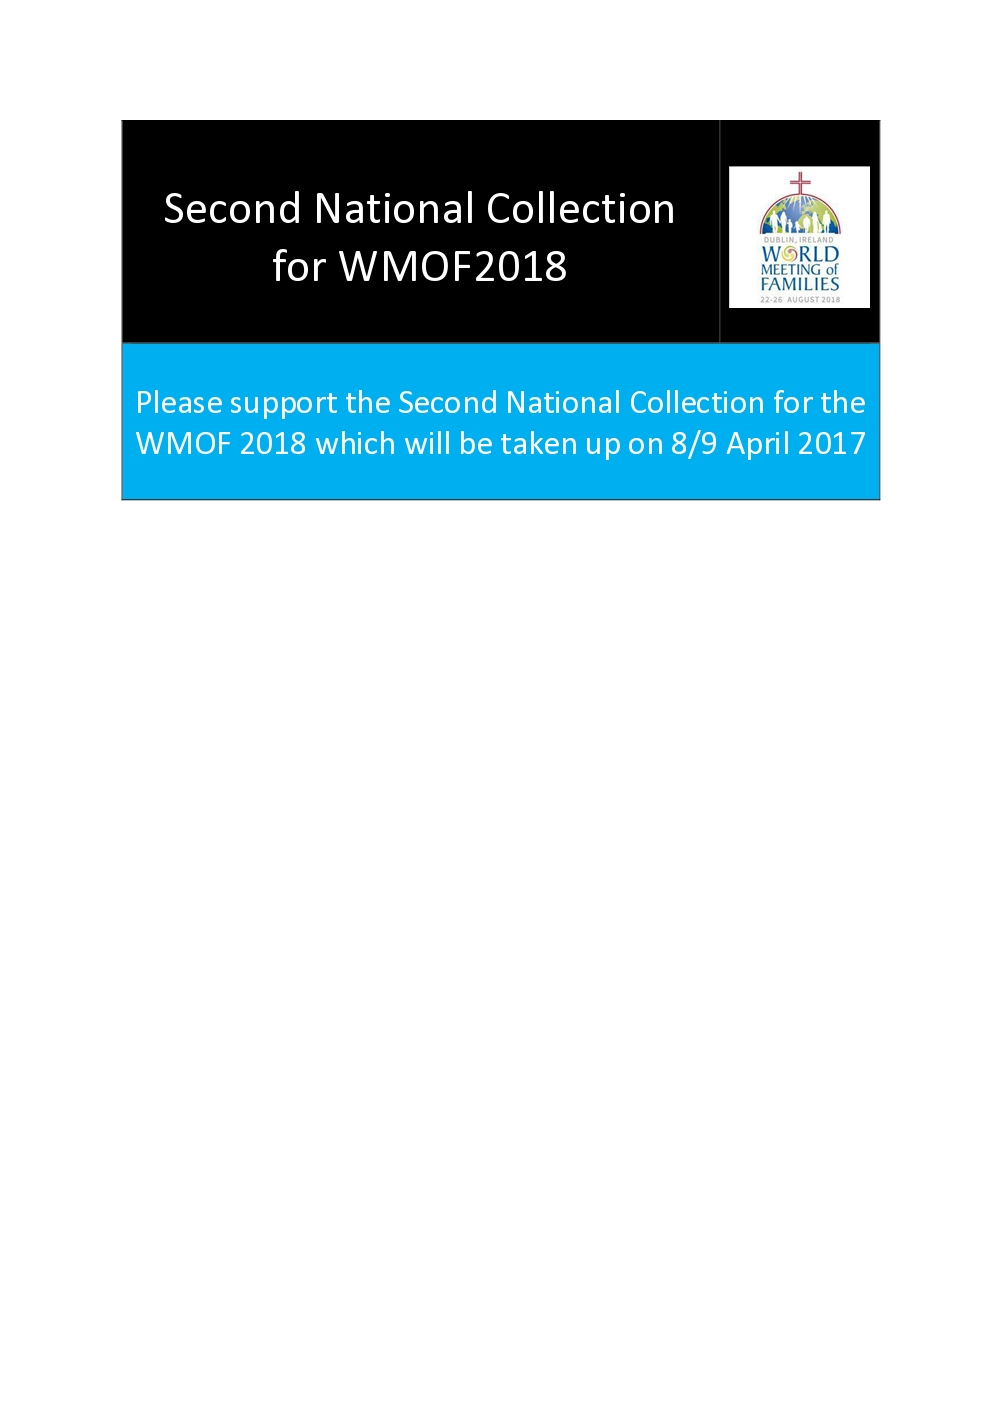 Second-National-Collection-for-WMOF2018_1